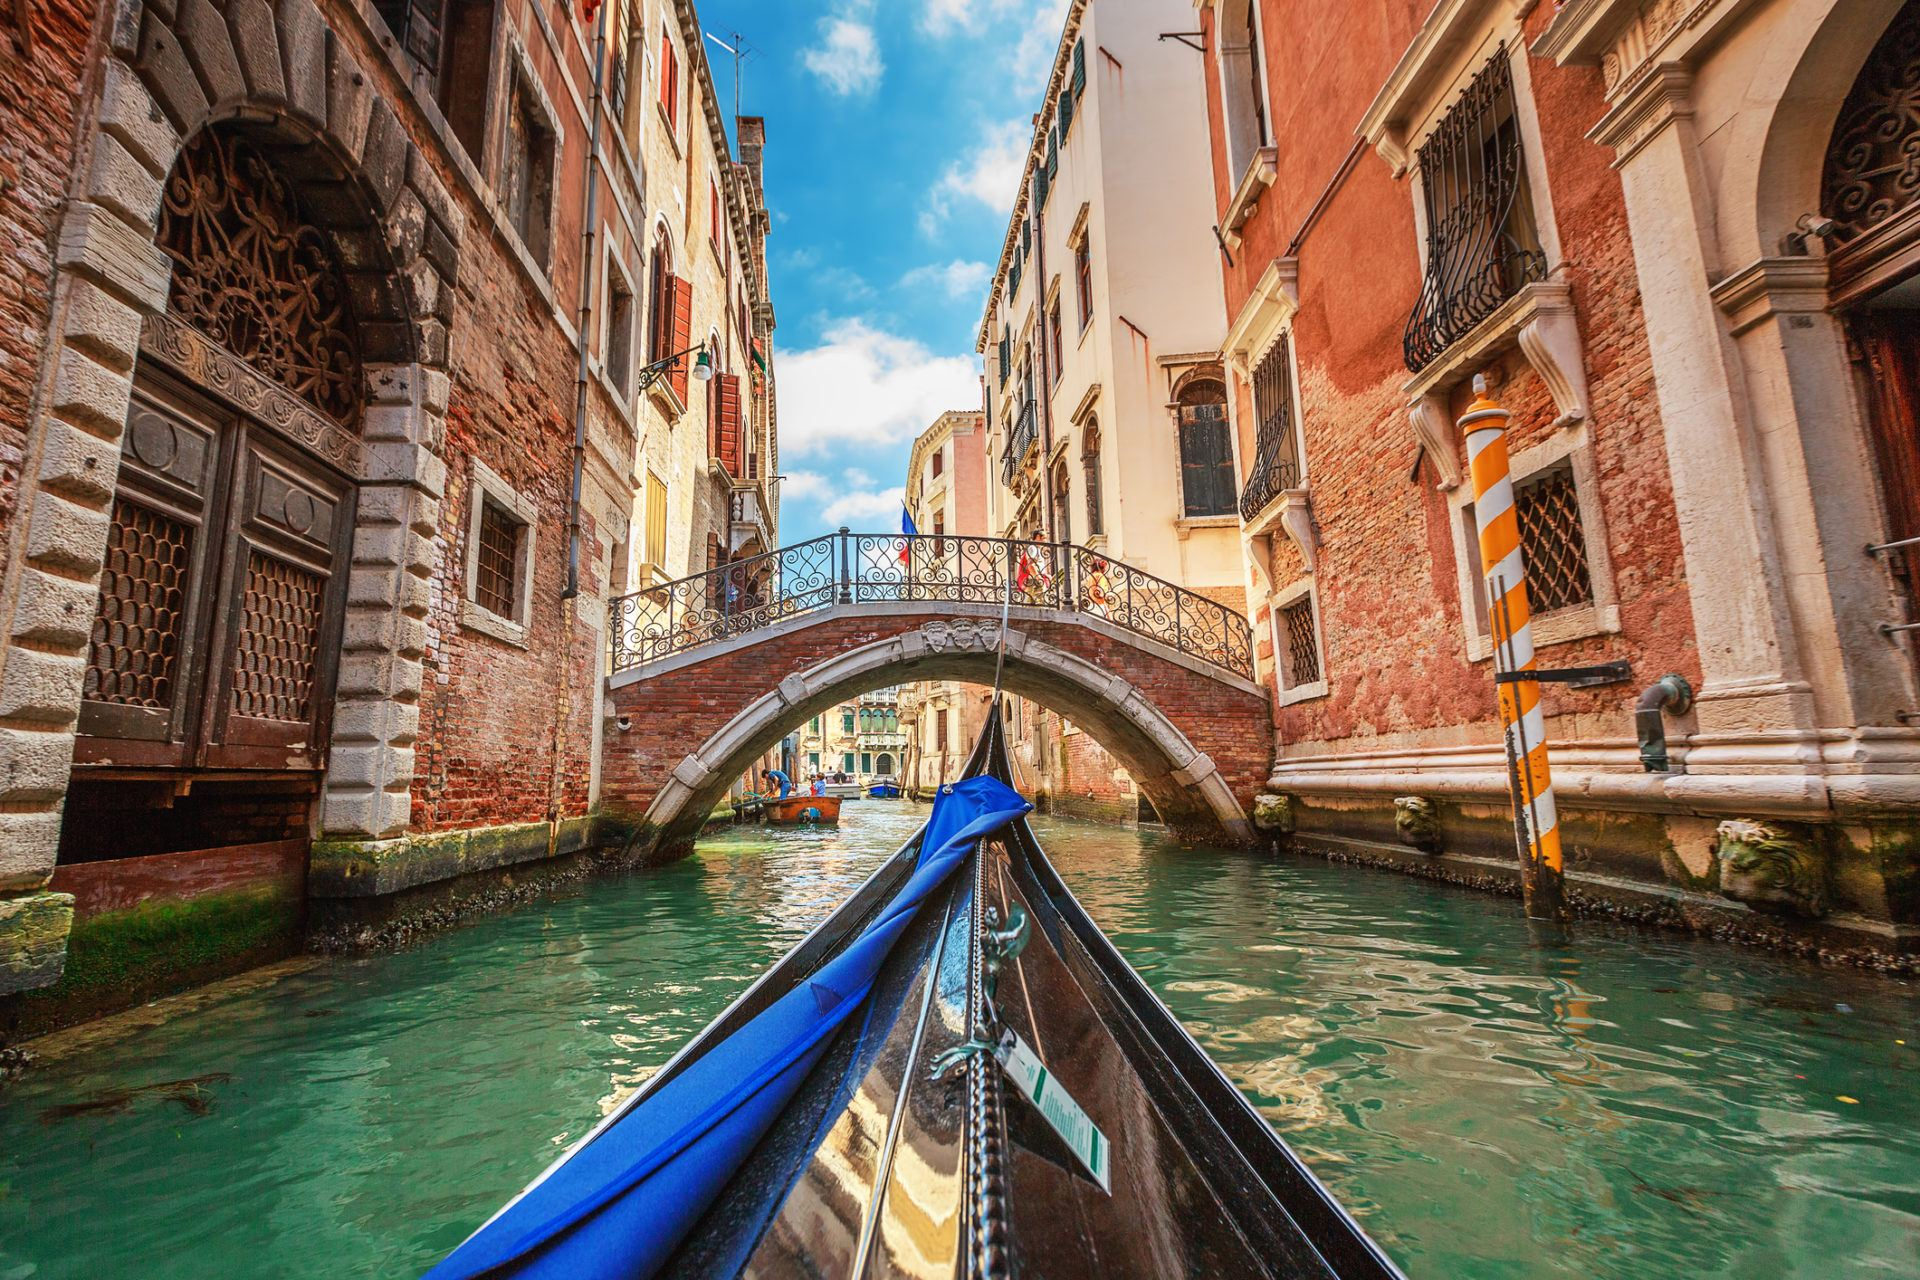 Romantisk tur til Venedig i april for kun 483,- (Inkl. hotel i centrum for 2.023,- i 6 dage)